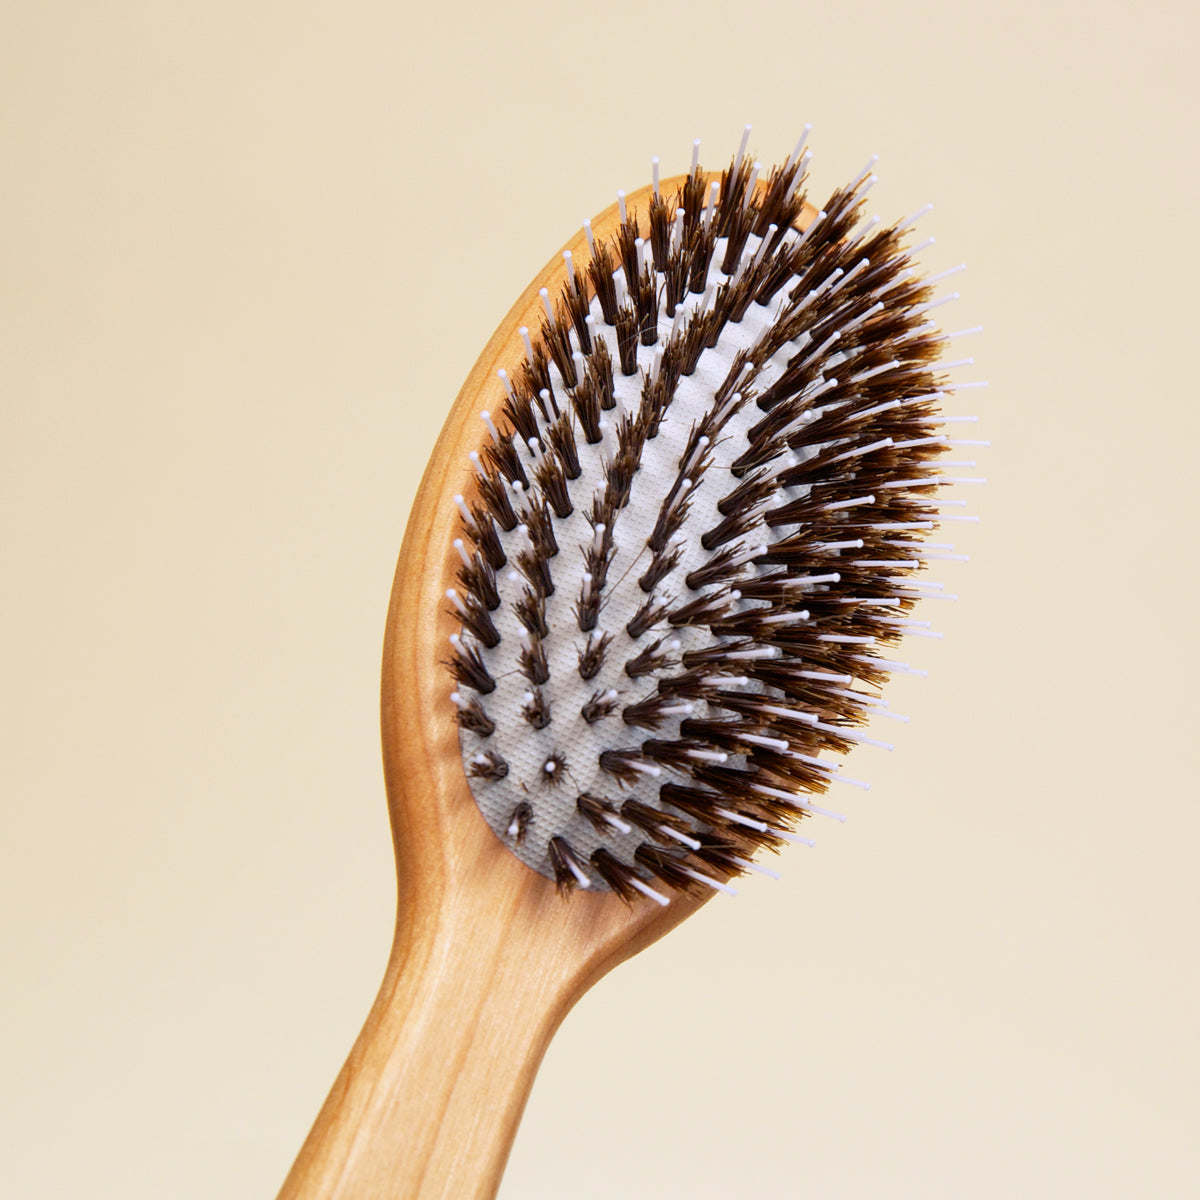 Alder Wood Hairbrush